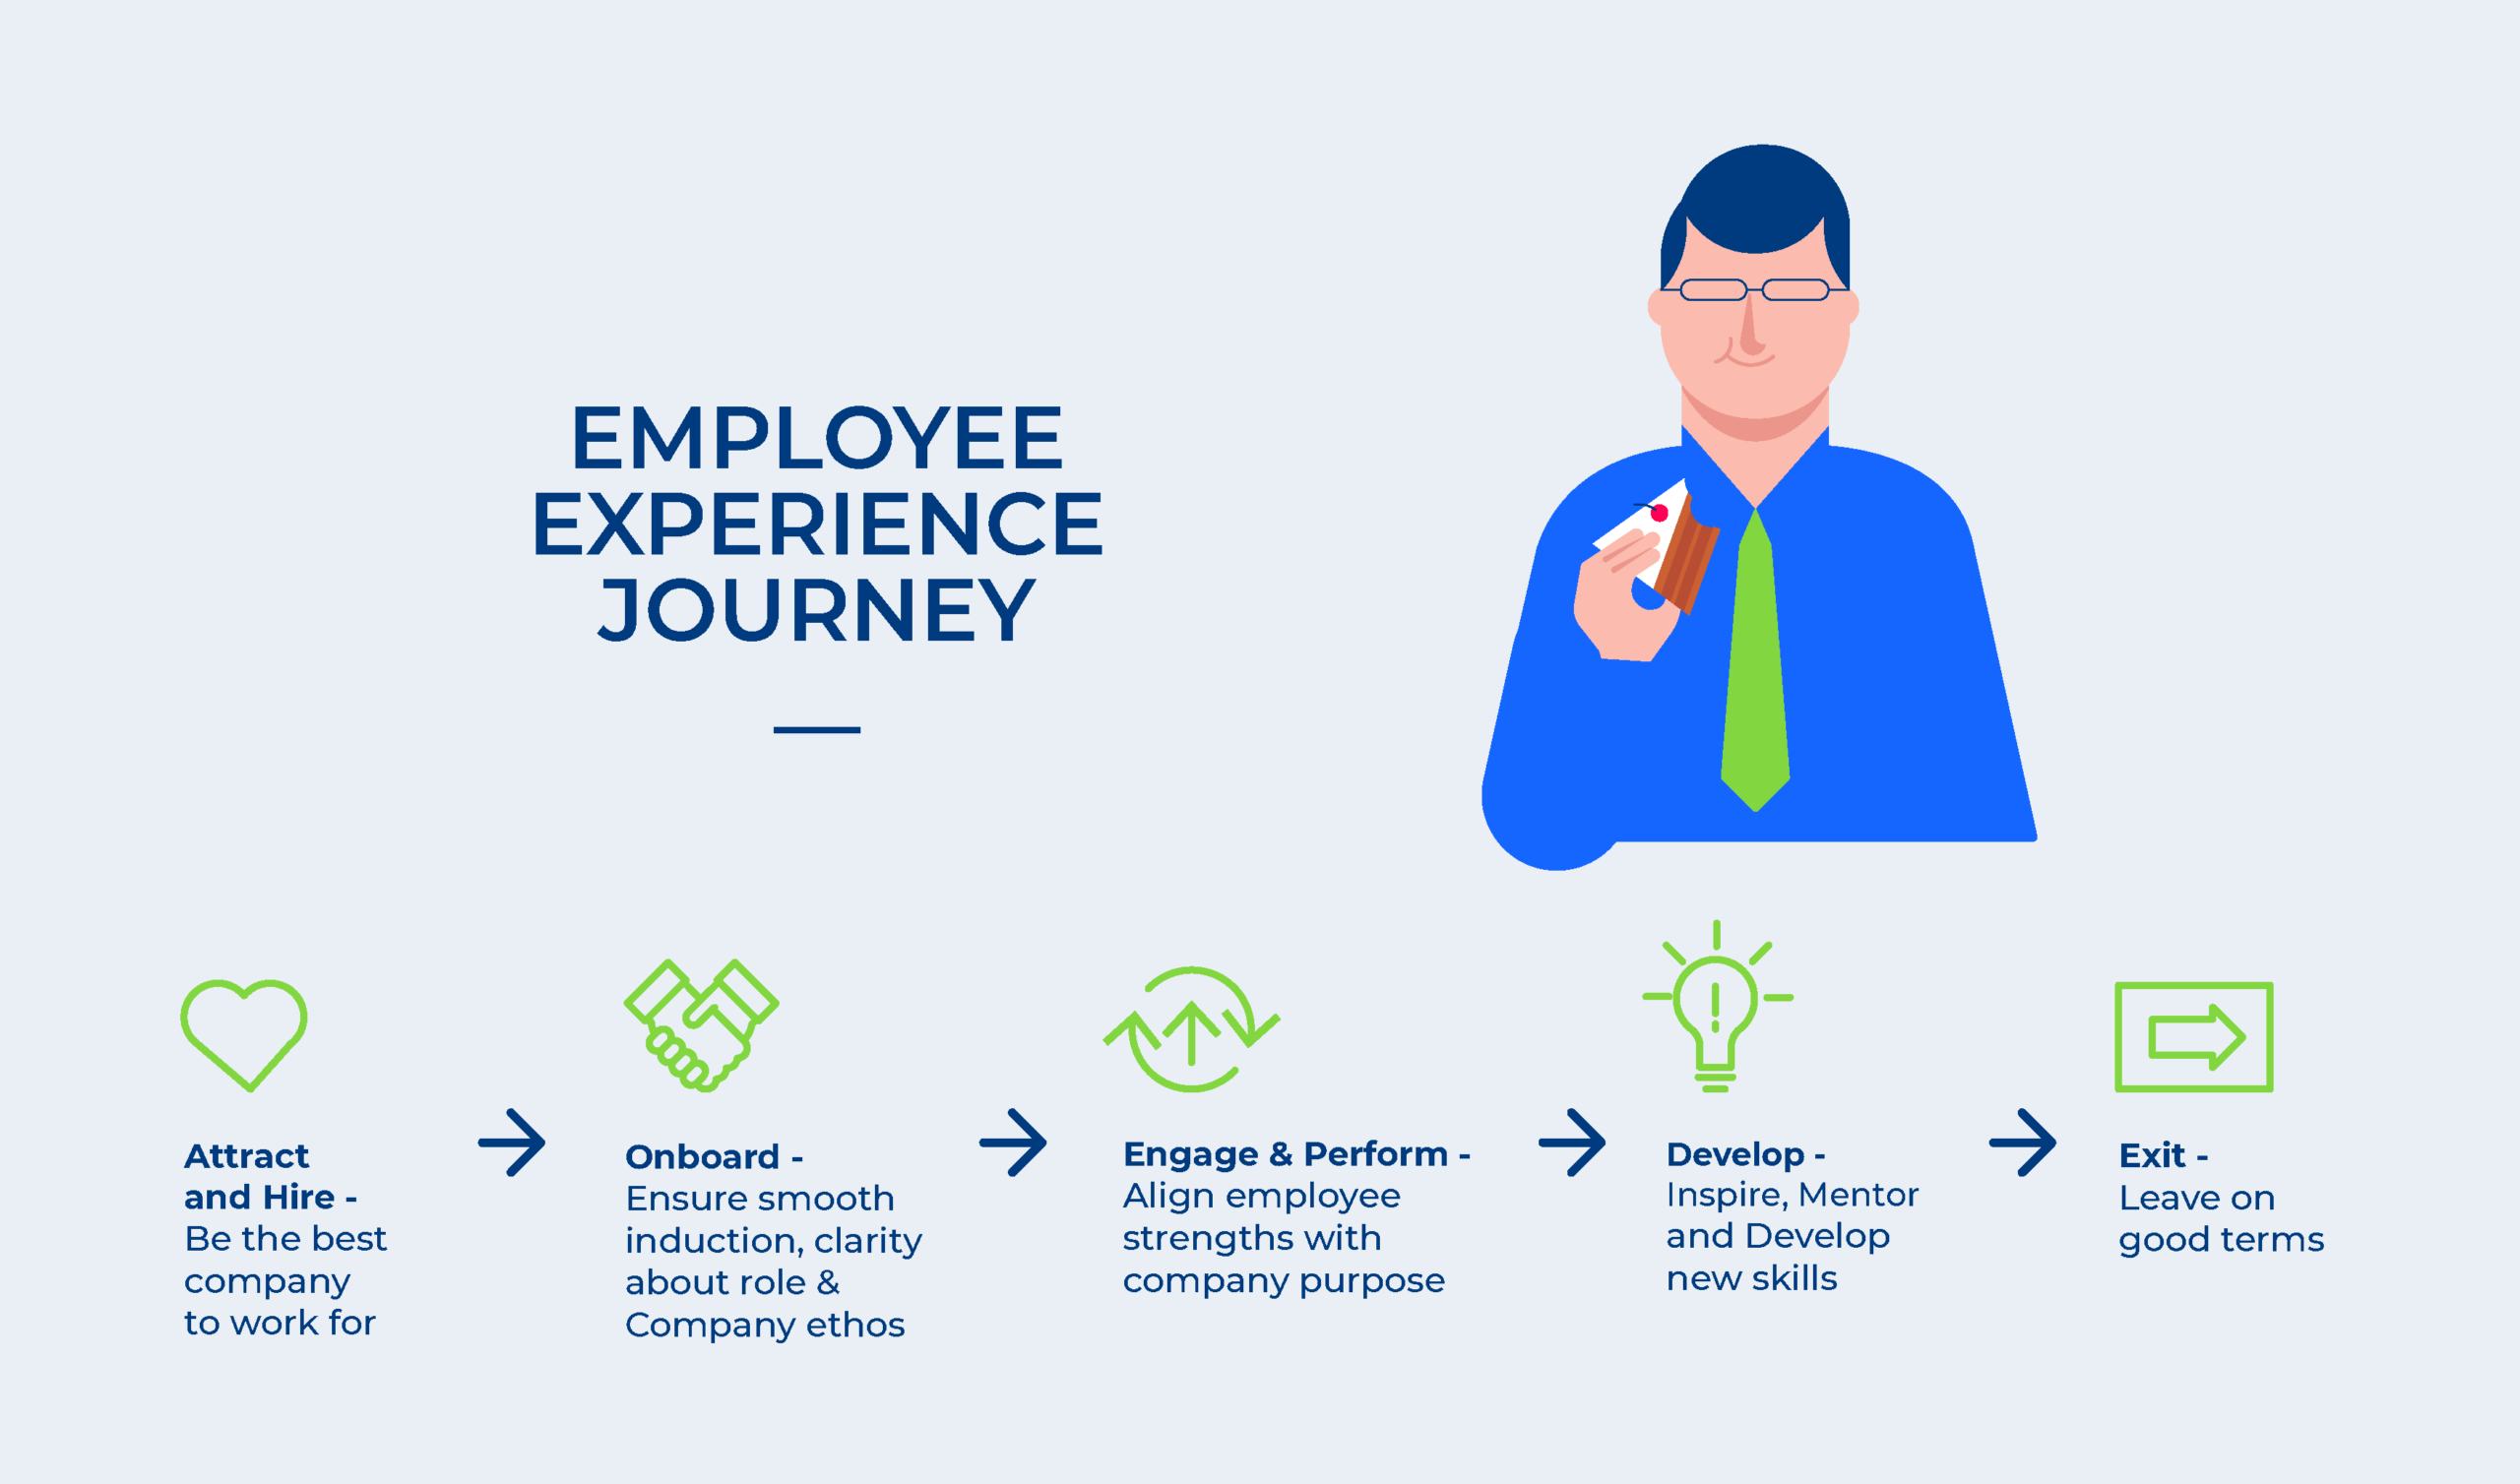 Employee experience during the pandemic – Getting insights now will have a long term impact employee experience